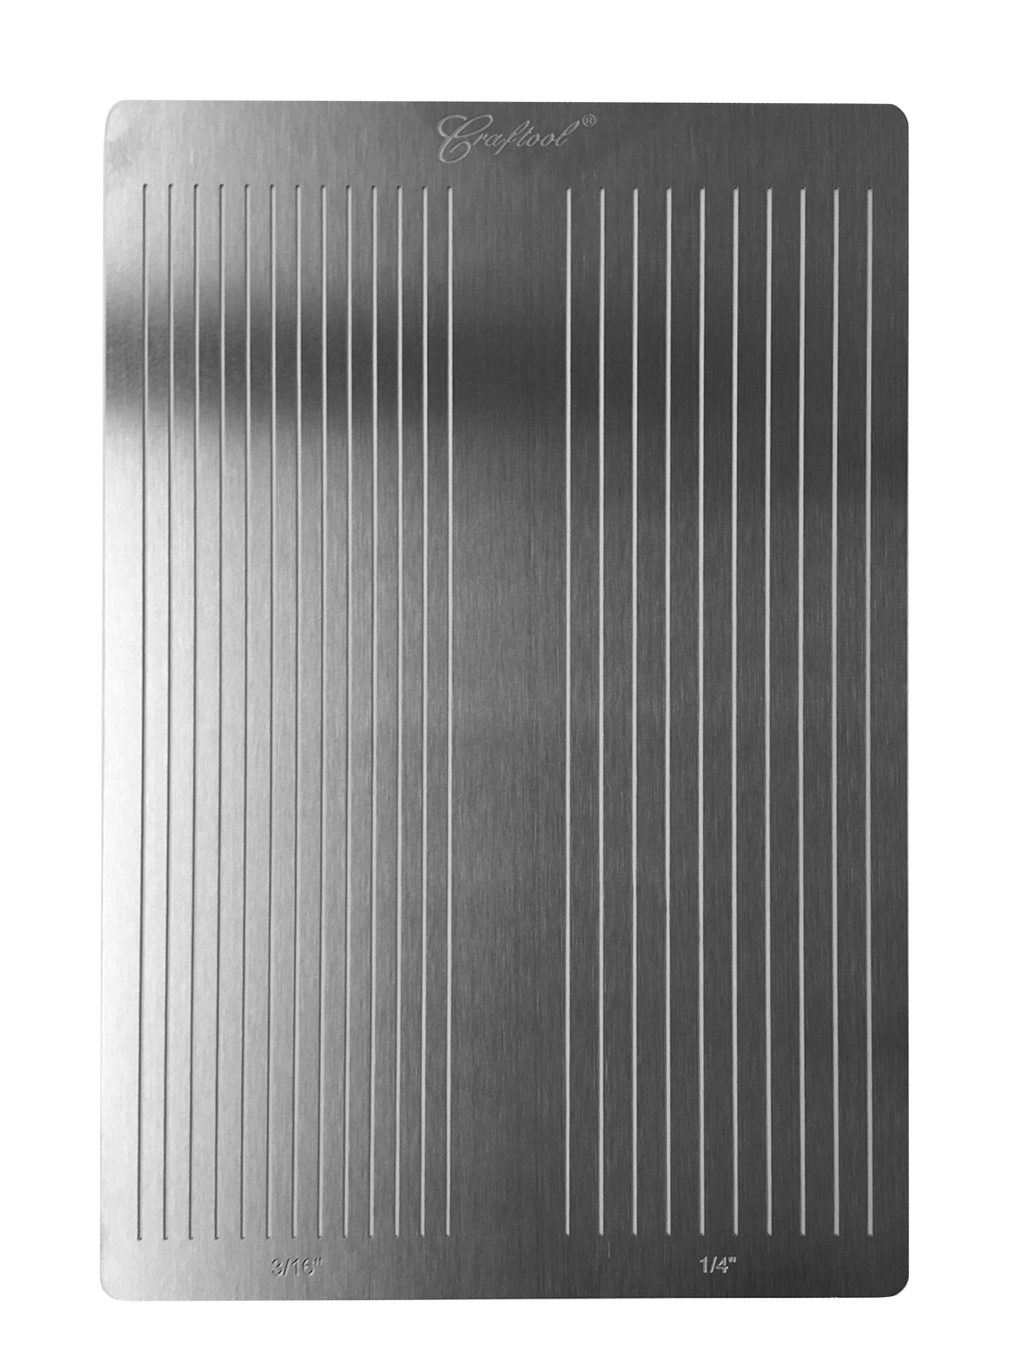 Stainless Steel Fringe Template - 360450